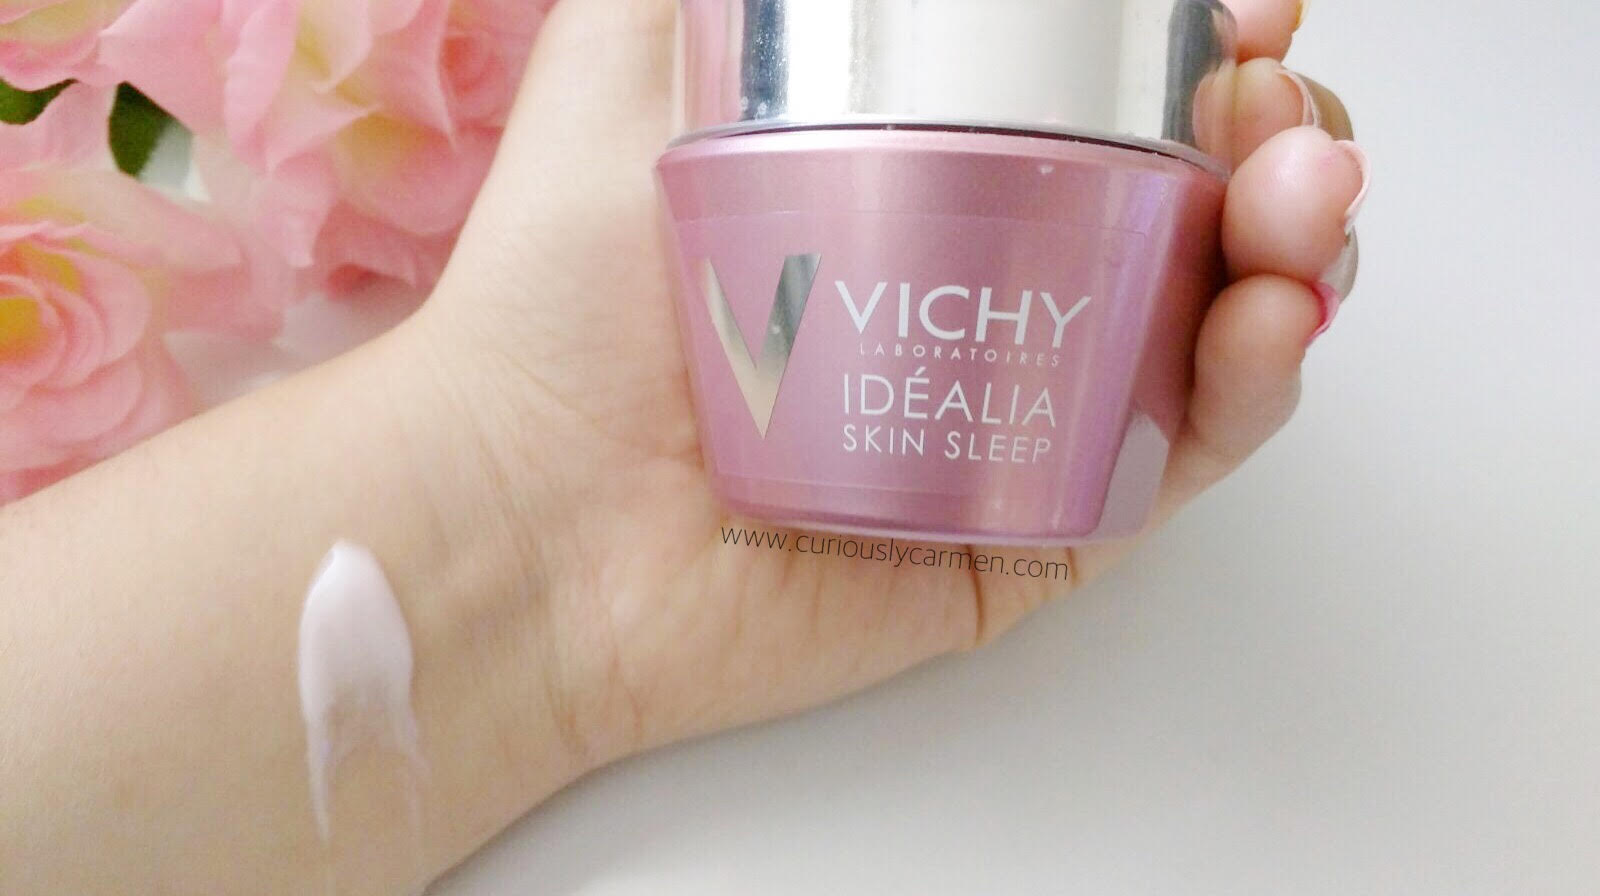 Vichy Idealia Skin Sleep Lotion